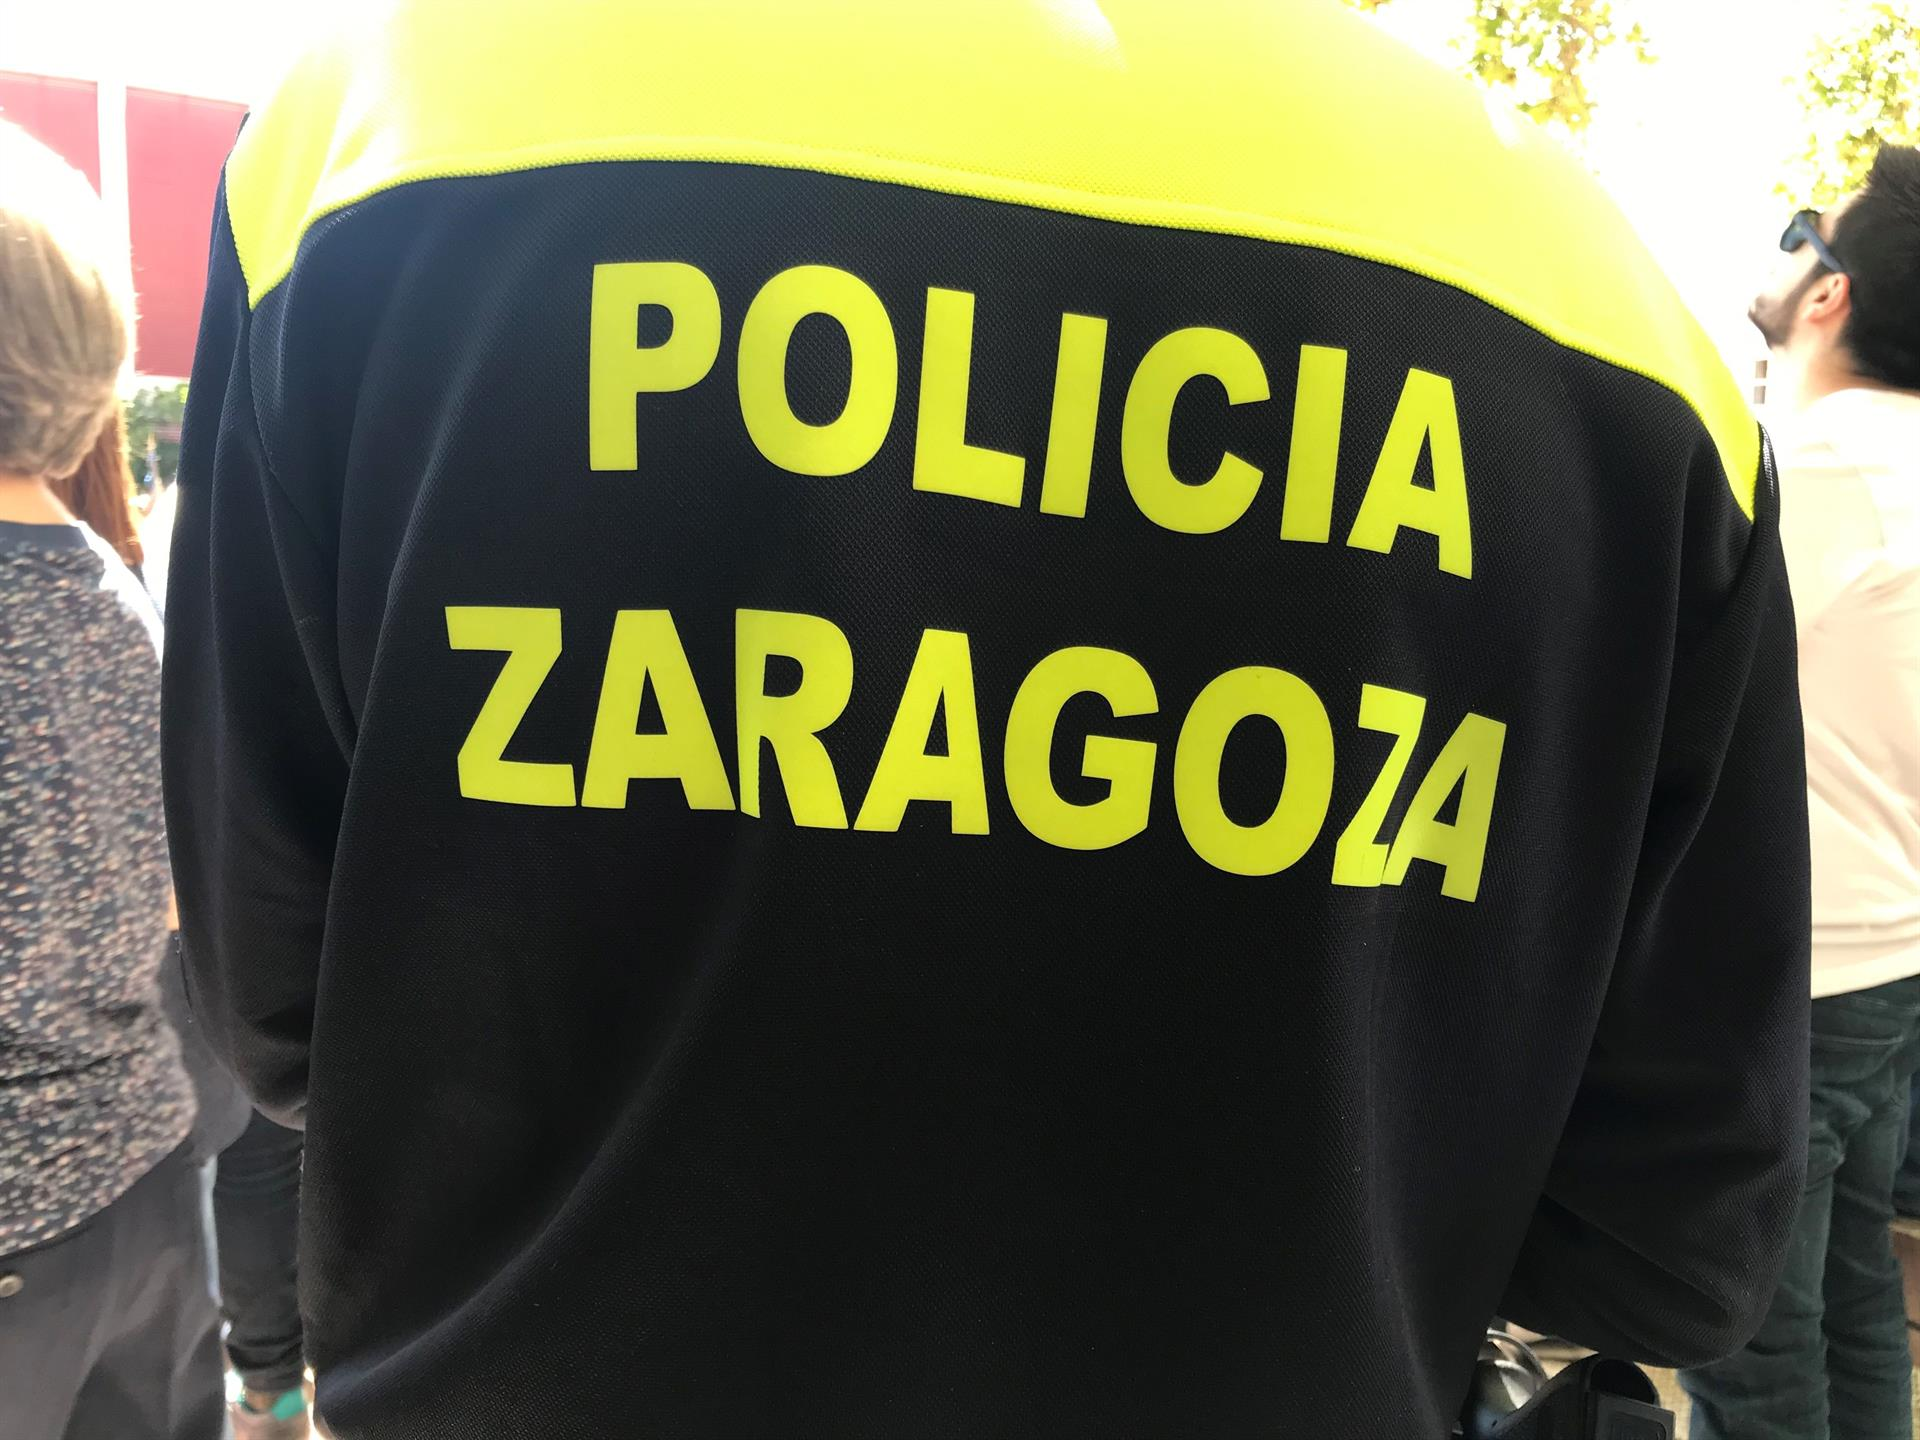 La Policía Local de Zaragoza realiza 537 multas por no llevar mascarilla y 115 por botellones - EUROPA PRESS - Archivo